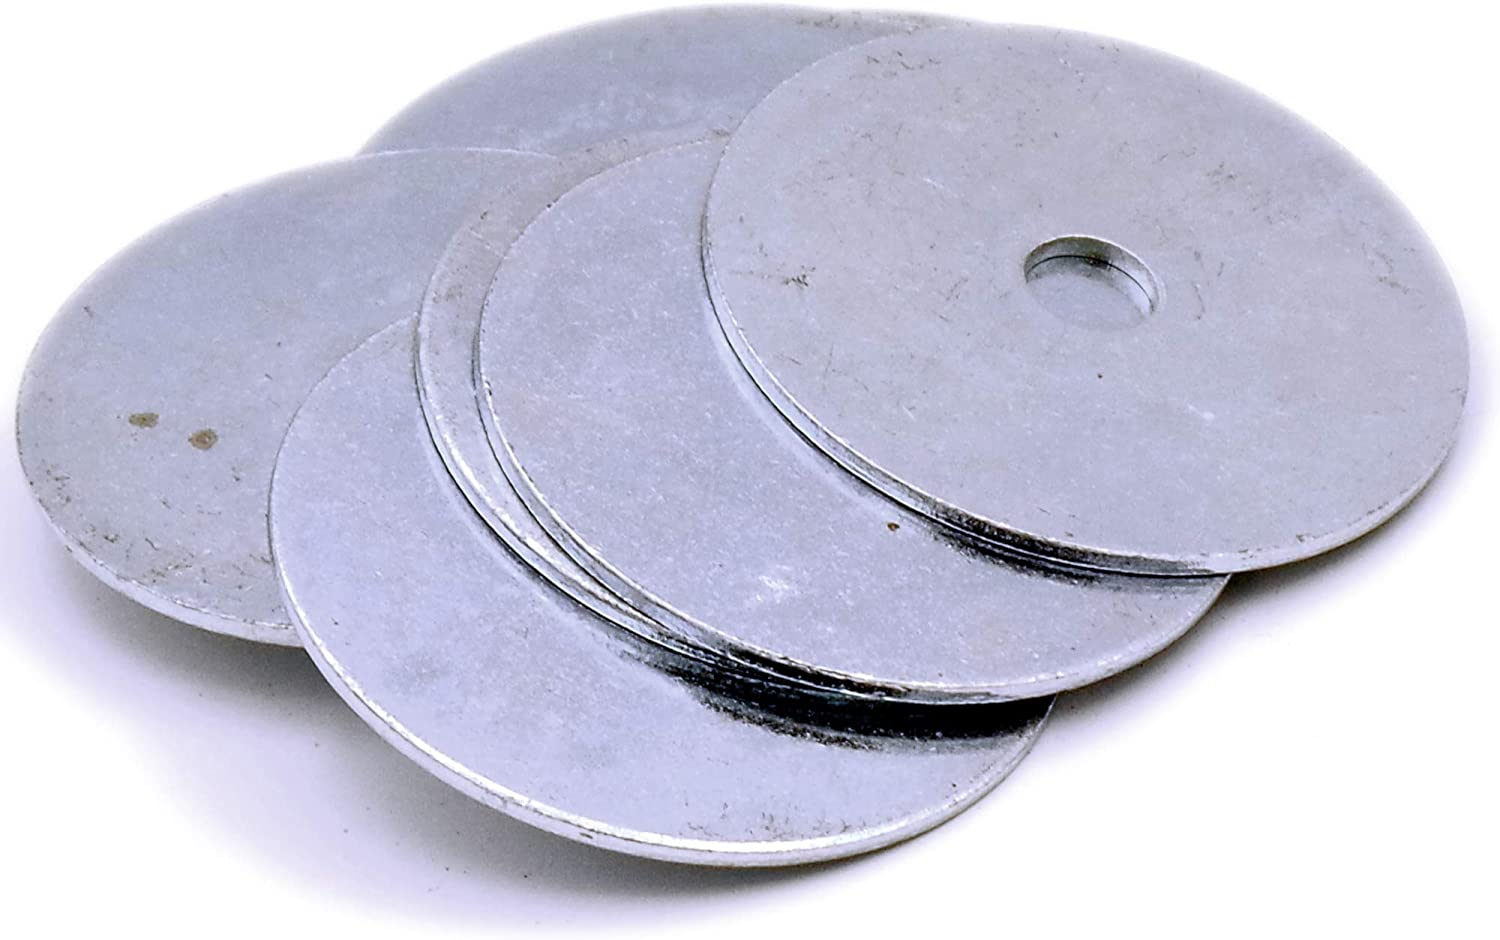 Large OD 10mm x 50mm Flat Repair Washer M10 Pack of 10 A2 - Stainless Steel